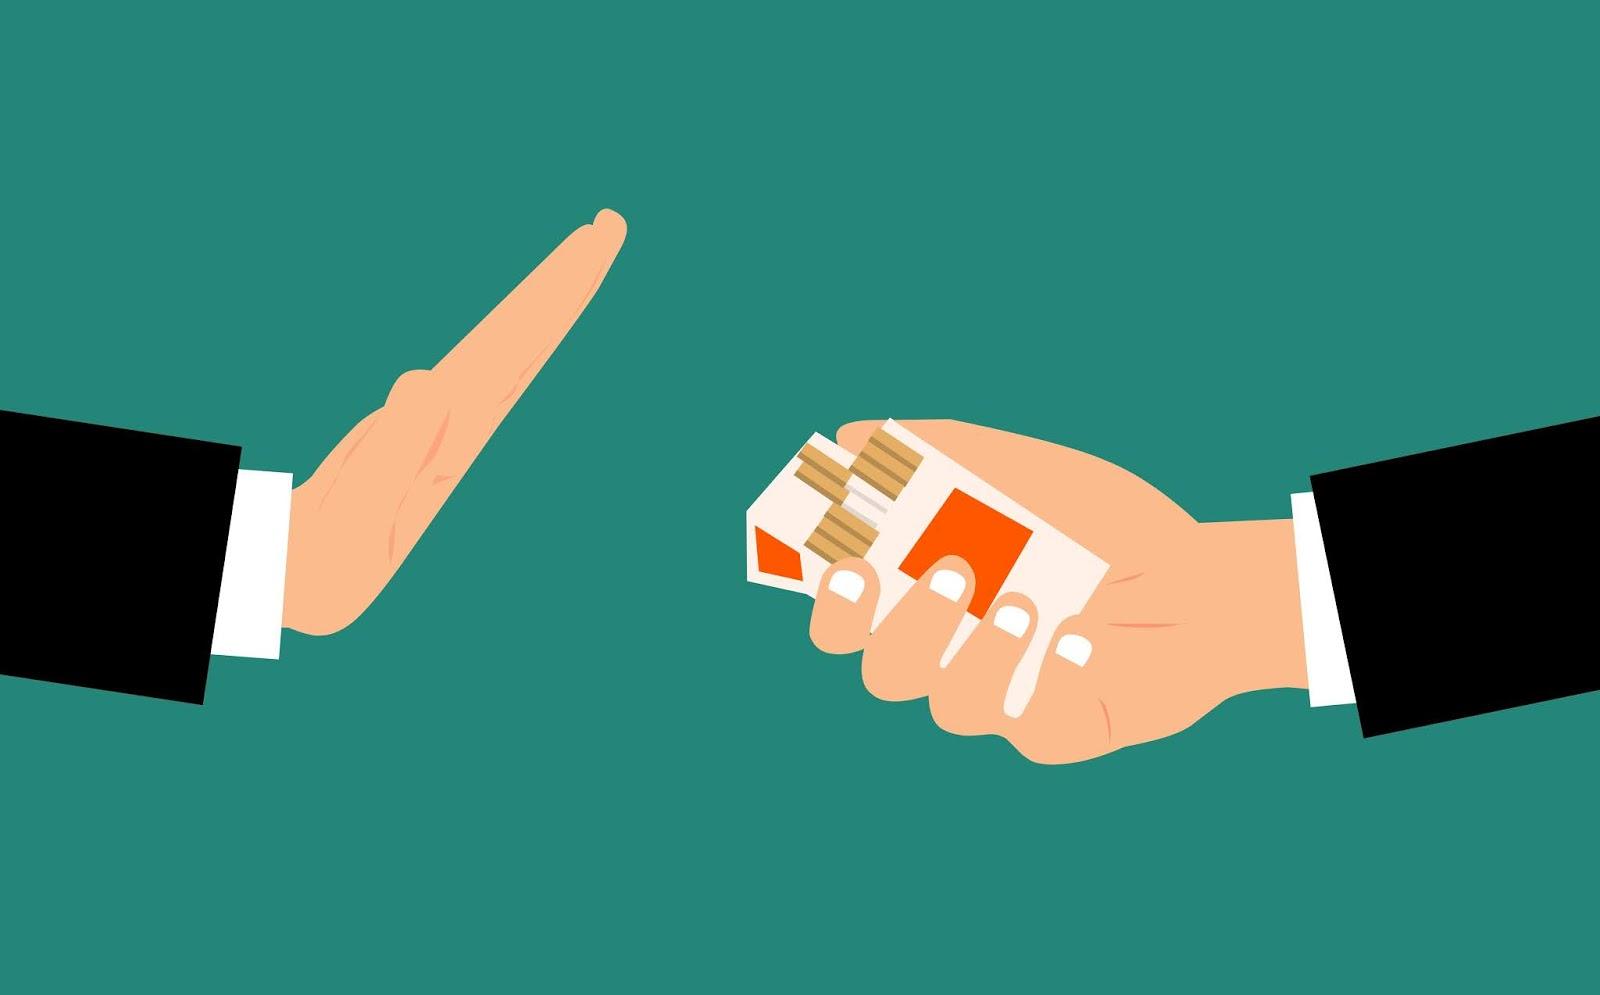 cigarette, addicted, stop, smoking, giving, ban, care, danger, hand, forbidden, habit, harmful, health, healthy, negative, no, offer, quit, refuse, reject, rejection, risk, tobacco, toxic, unhealthy